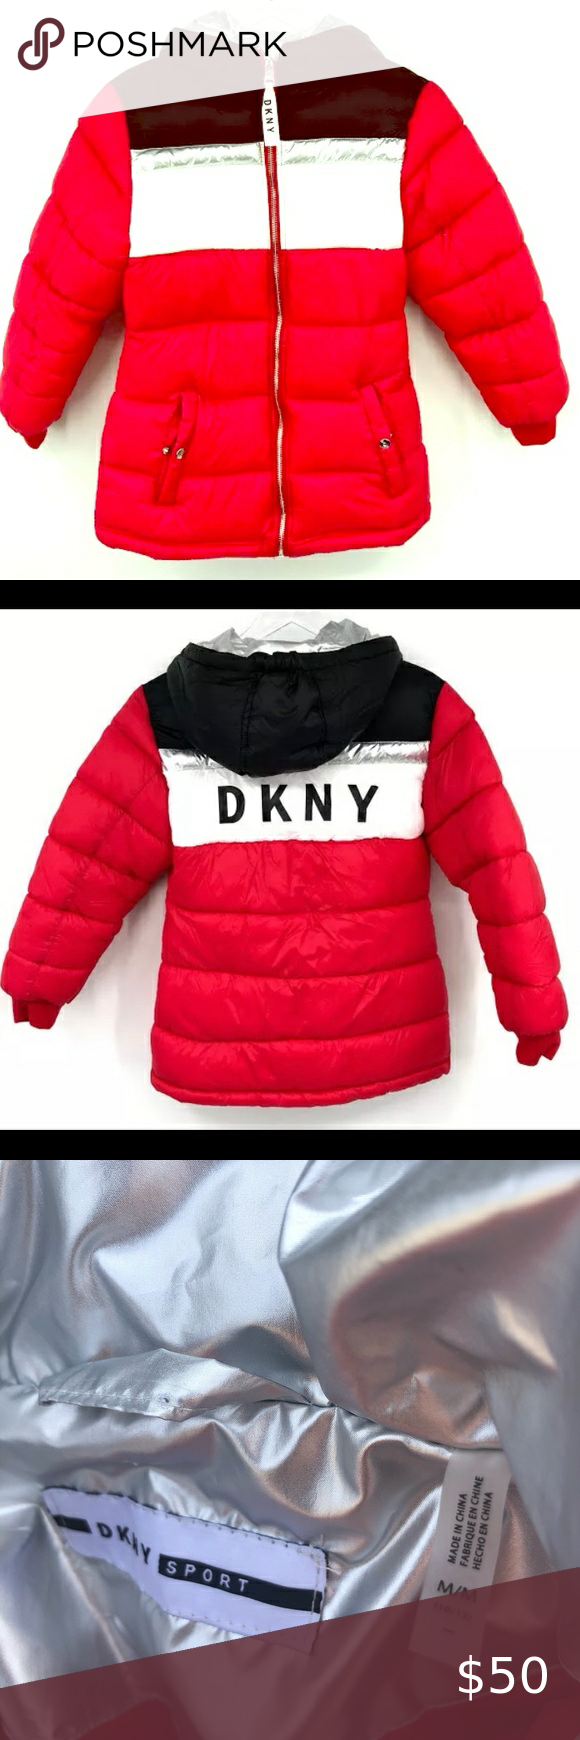 Kid S Dkny Sport Red Hooded Puffer Jacket Sz 10 12 Brand New With Tags Kid S Size M 10 12 Dkny Sport Puffer Jacket L Jackets Puffer Jackets Quilted Jacket [ 1740 x 580 Pixel ]